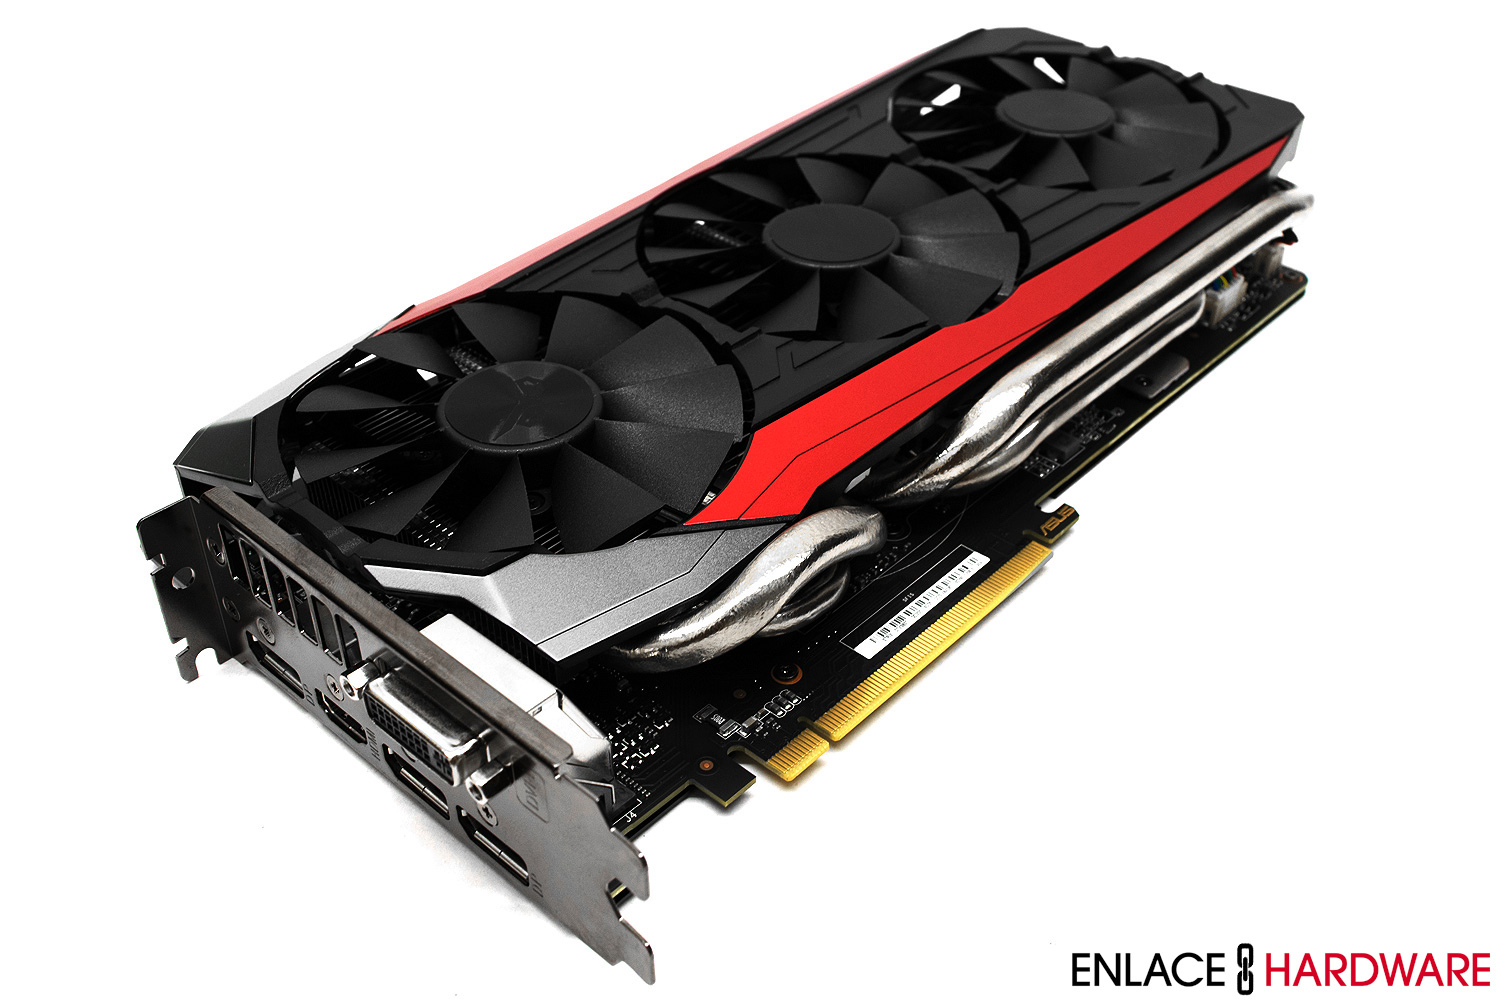 ASUS-Strix-GeForce-GTX-980-Ti-Review-5